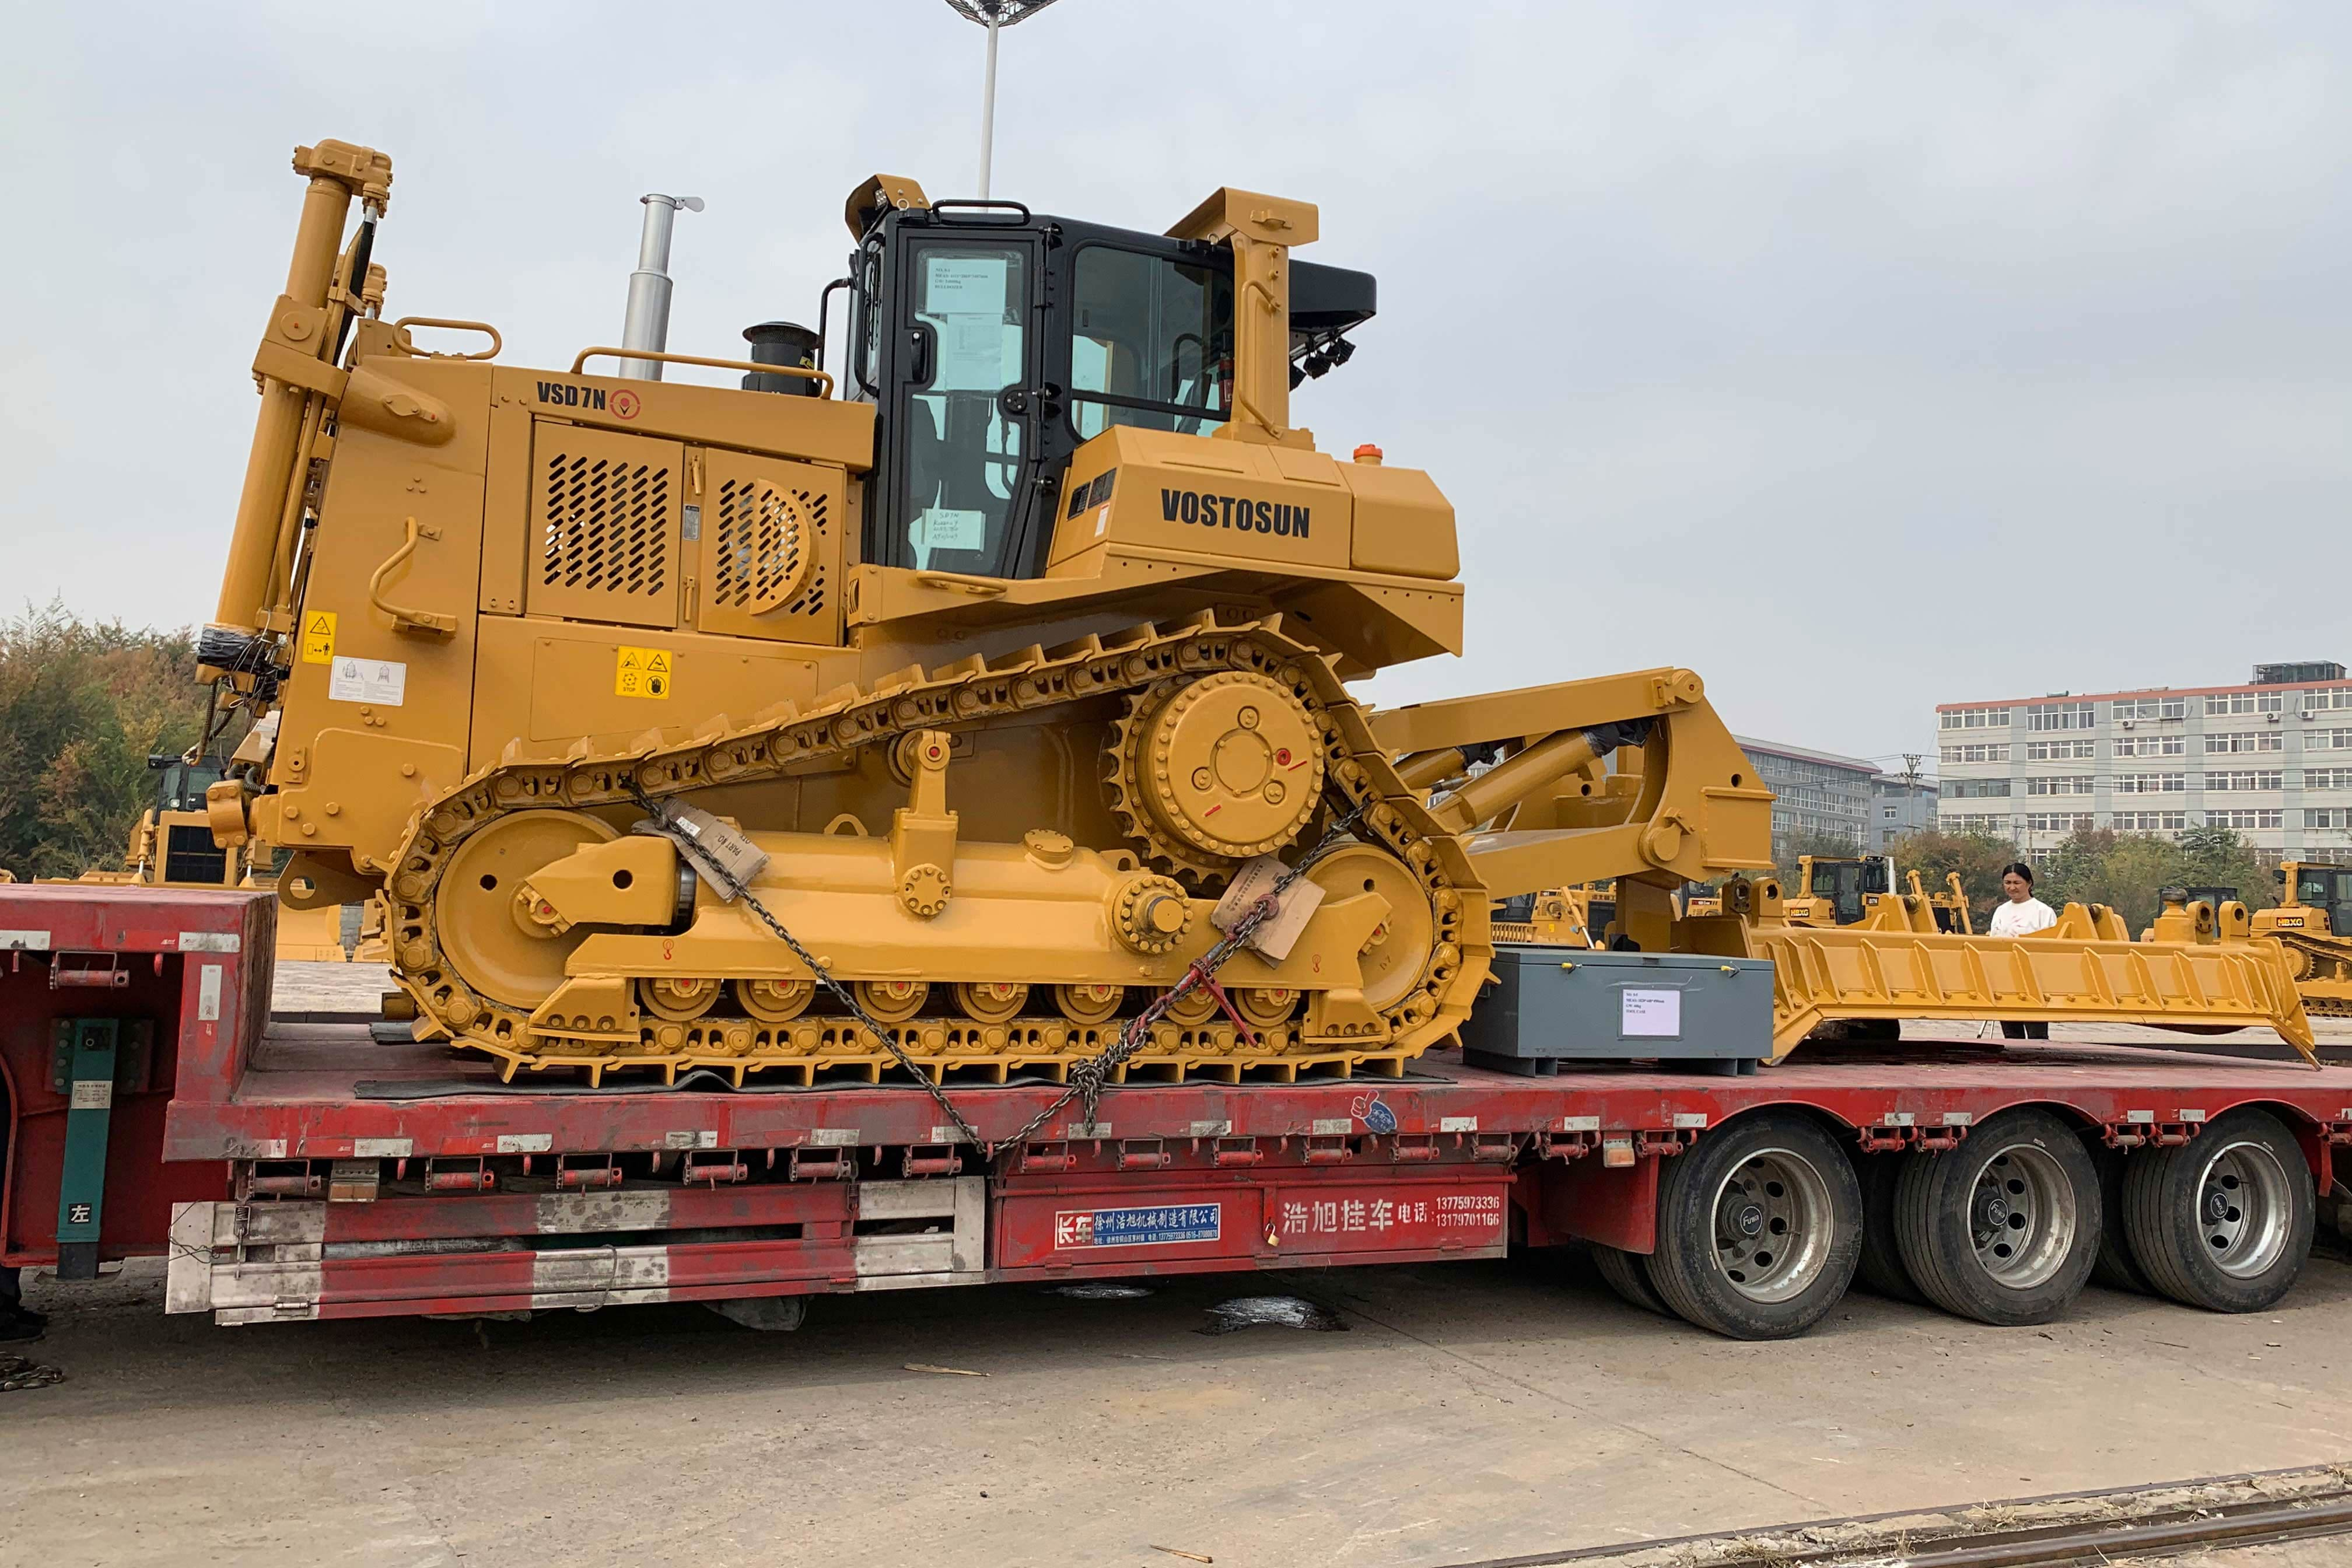 On October 20, 2020, VOSTOSUN's bulldozer VSD7N began to be transported to Russia